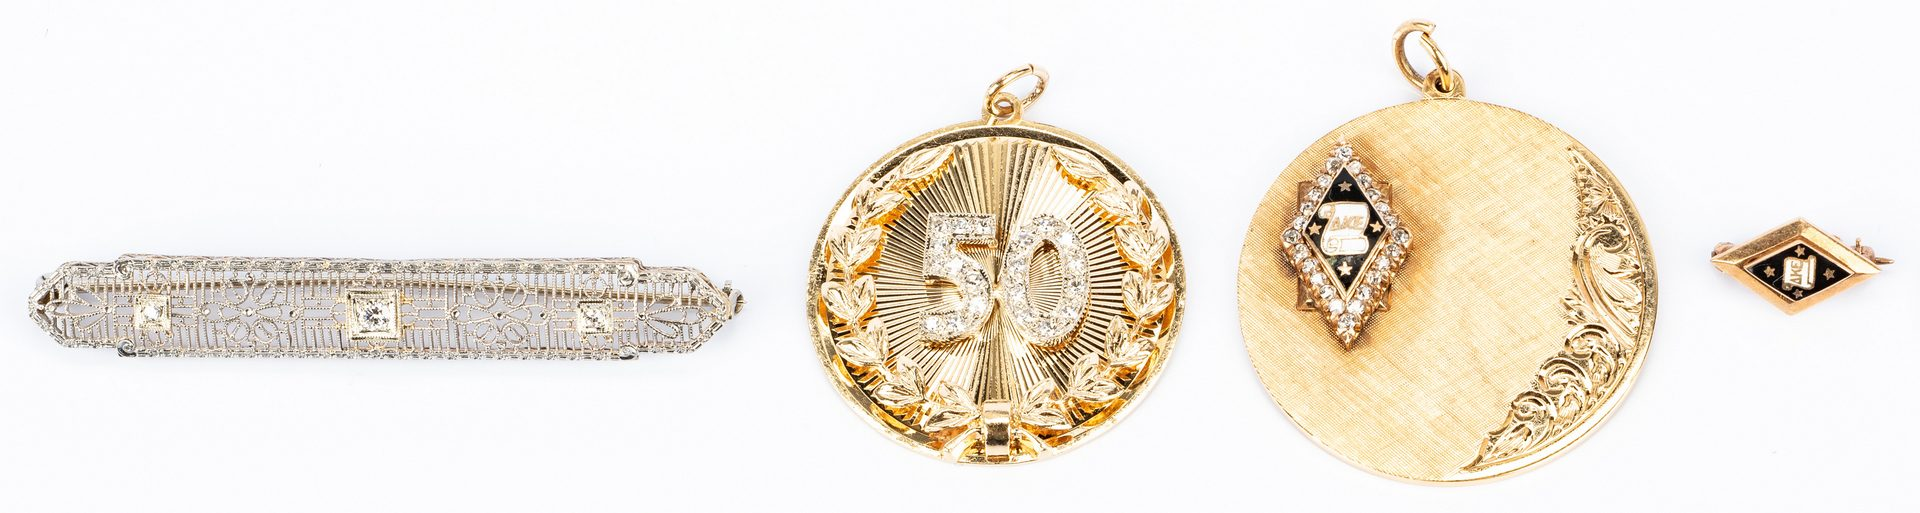 Lot 668: Assorted Gold and Diamond Vintage jewelry, 4 items